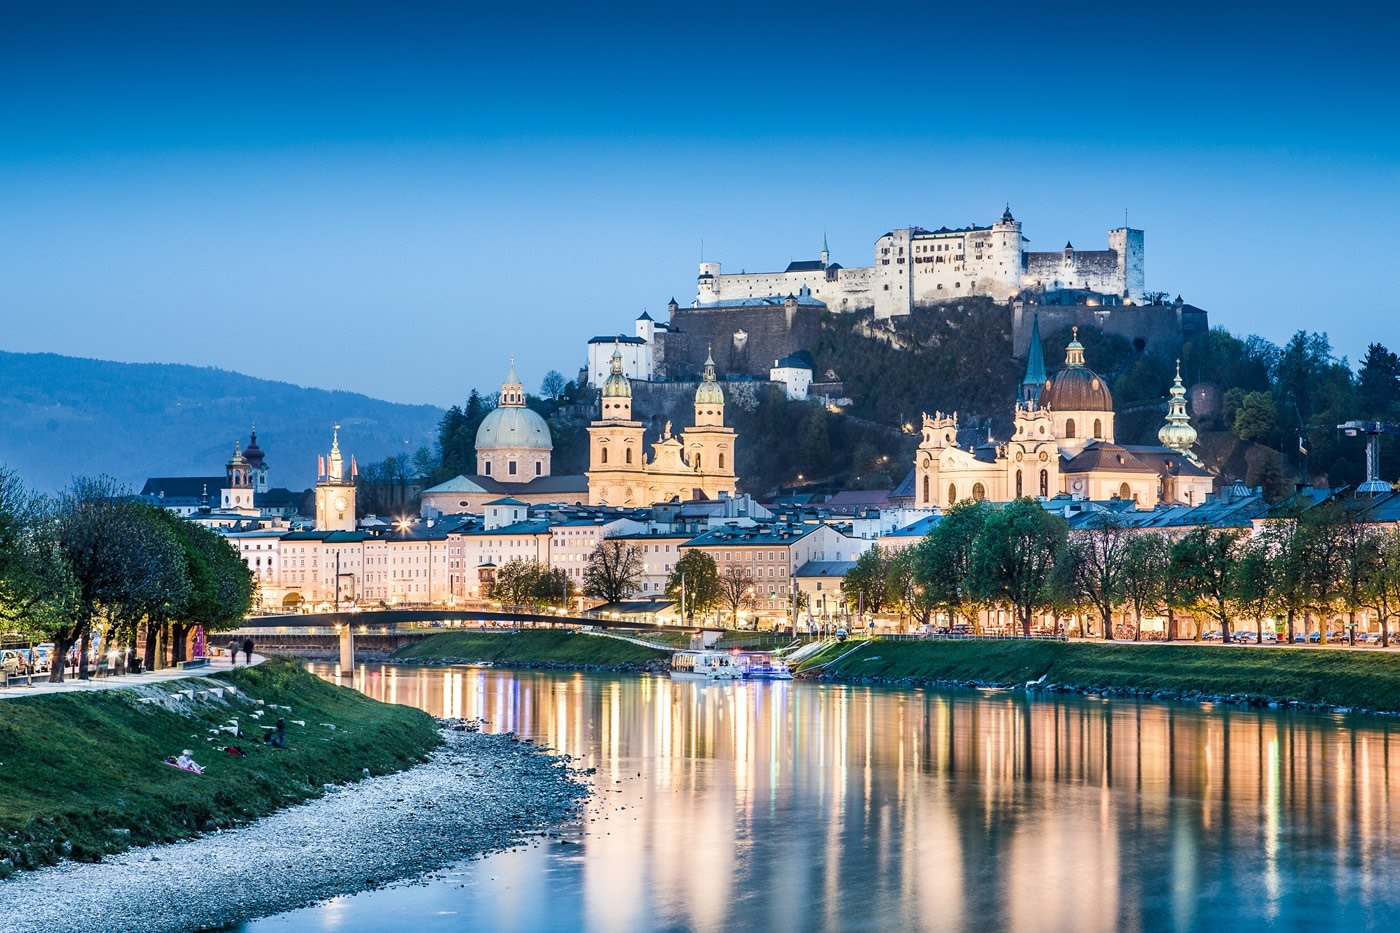 View of Mozart's city, Salzburg